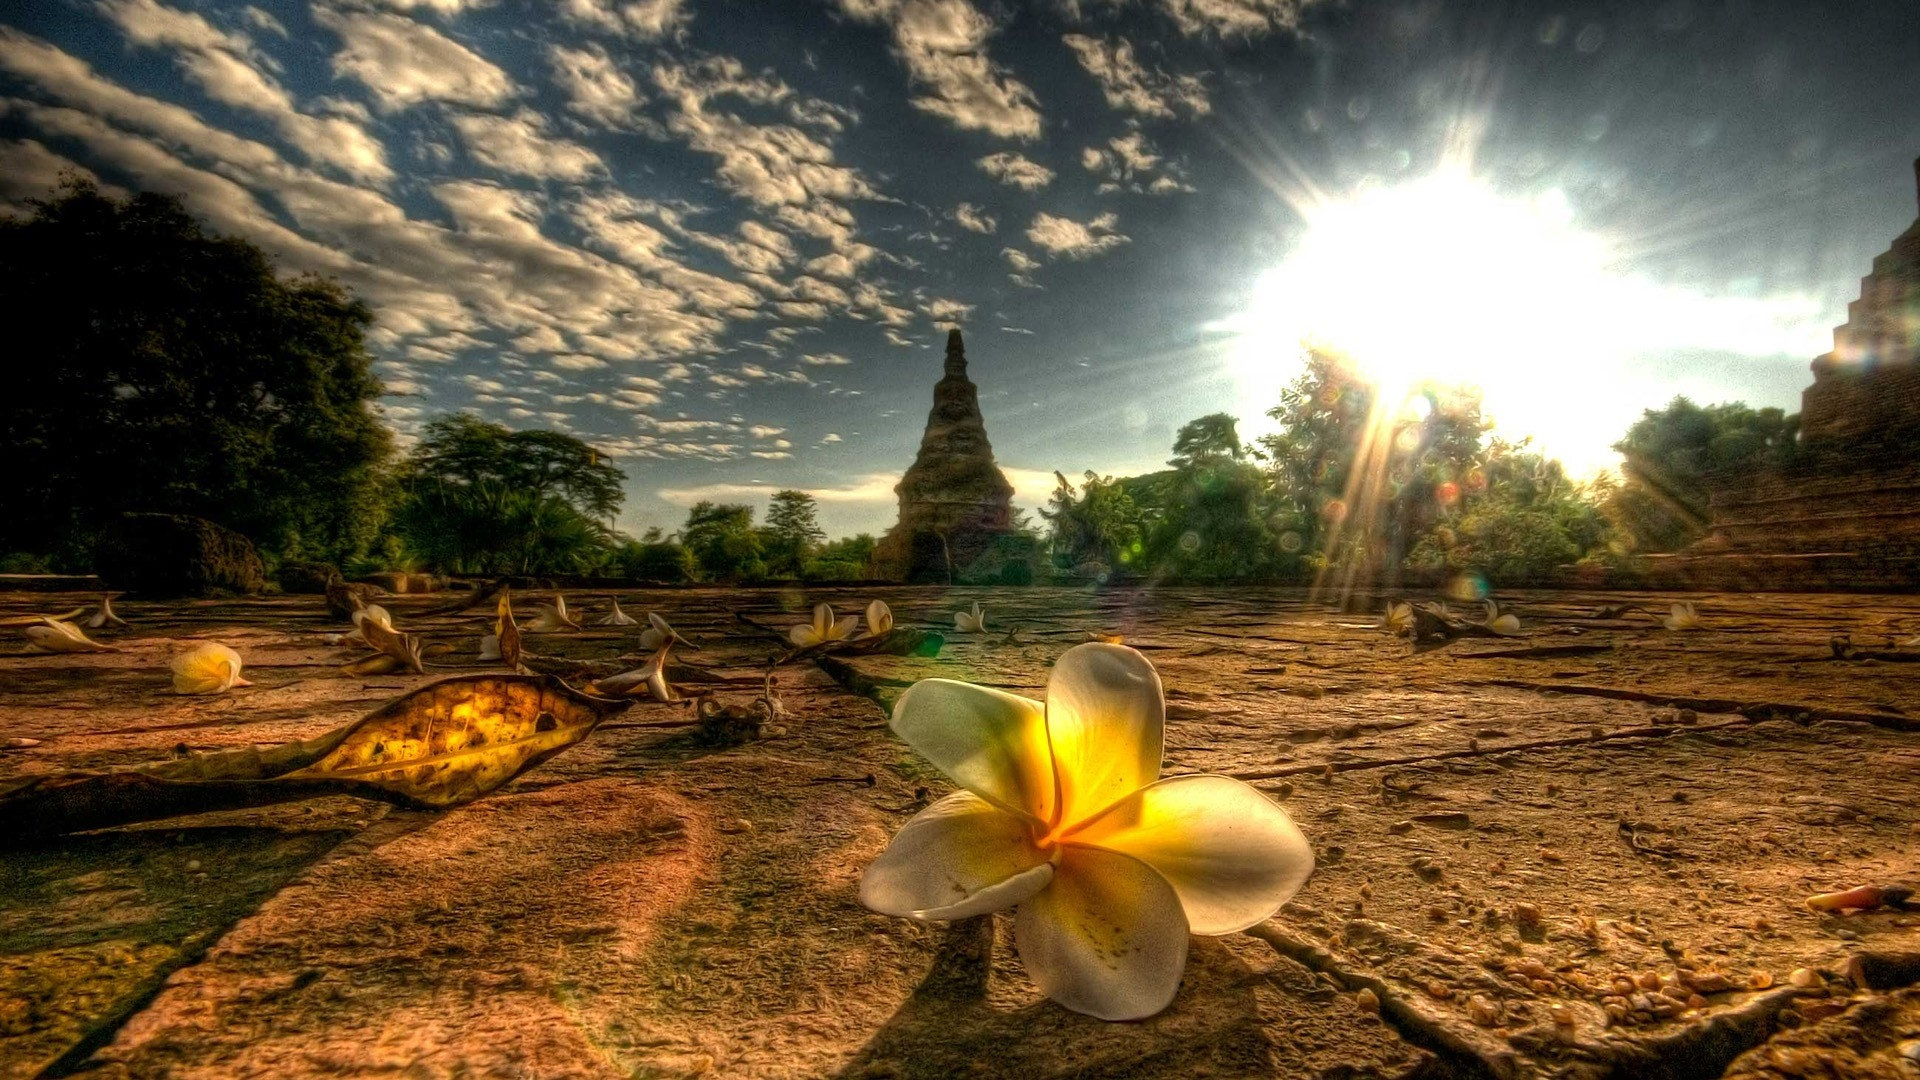 Thailand wallpapers best wallpapers for Immagini 1920x1080